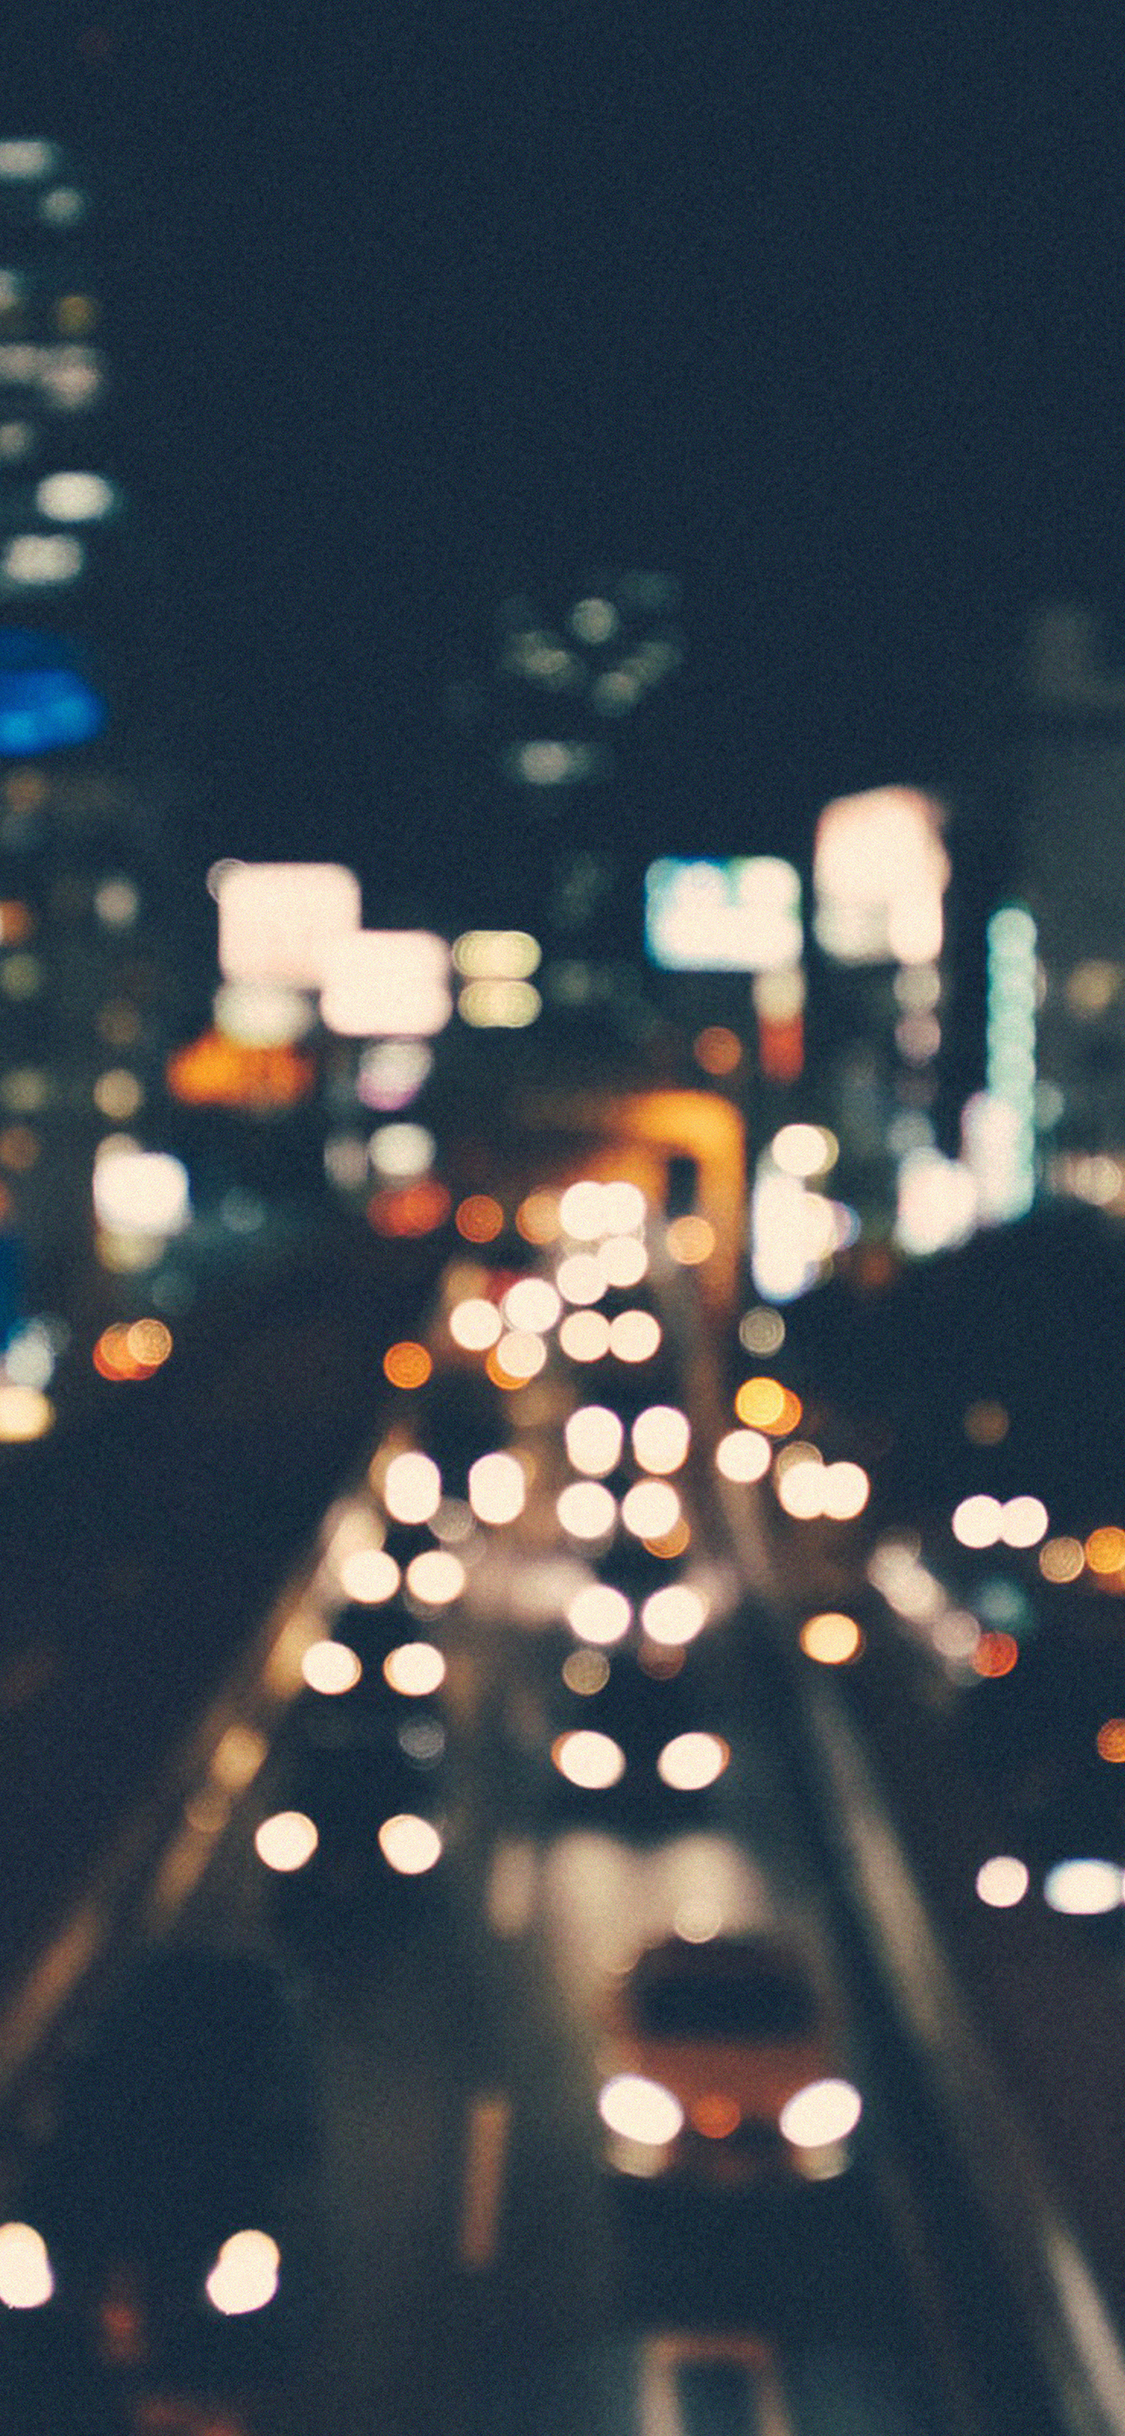 iPhonexpapers.com-Apple-iPhone-wallpaper-mn03-city-bokeh-night-street-nature